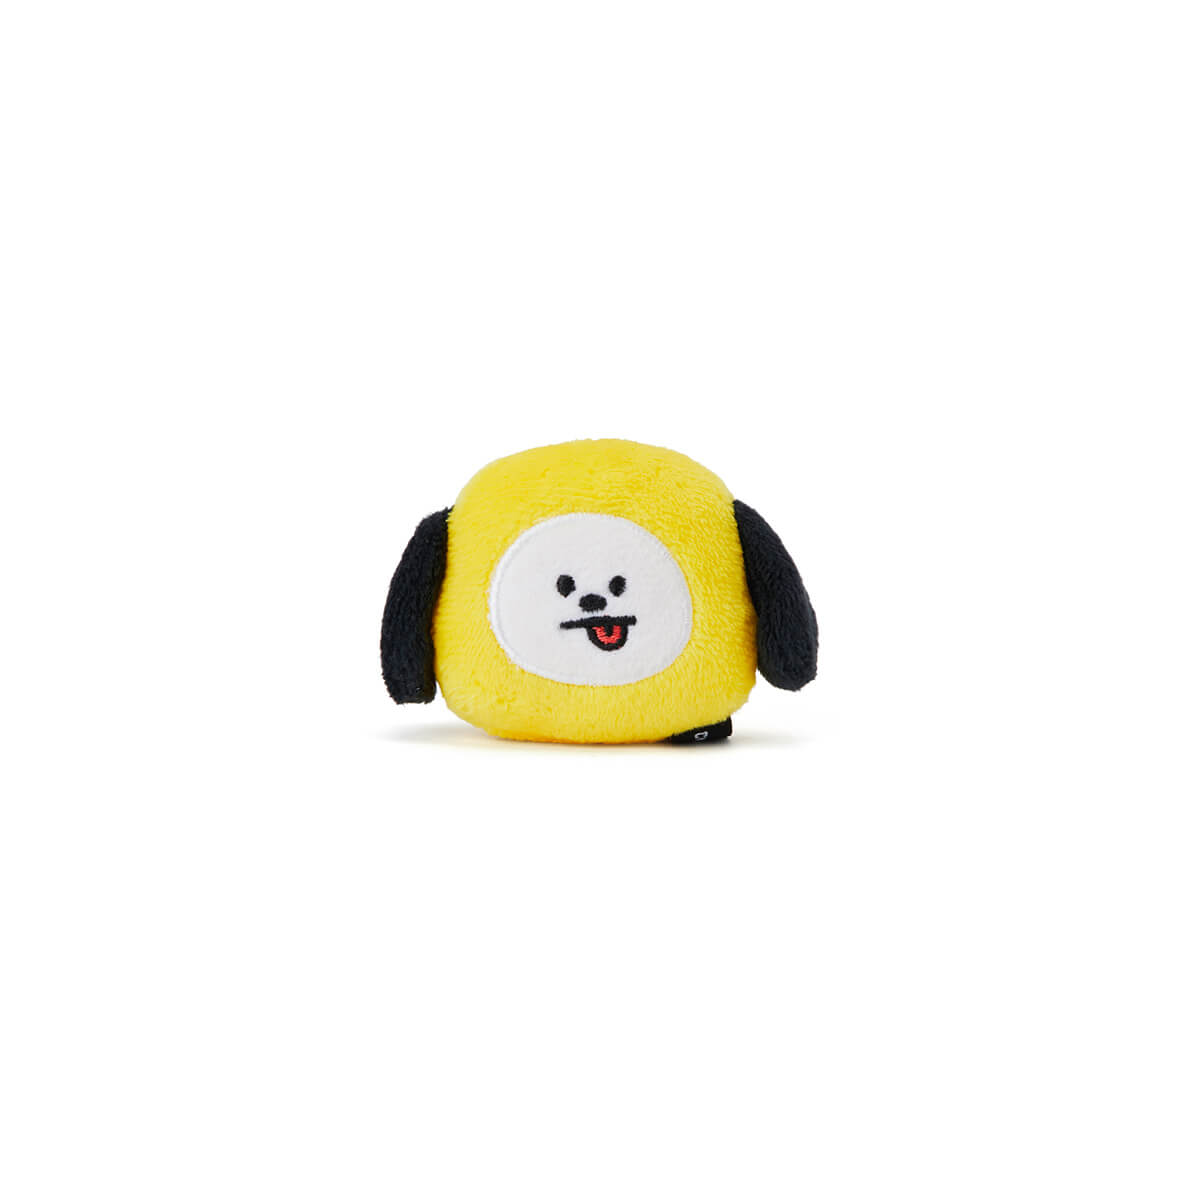 BT21 CHIMMY Plush Face Magnet